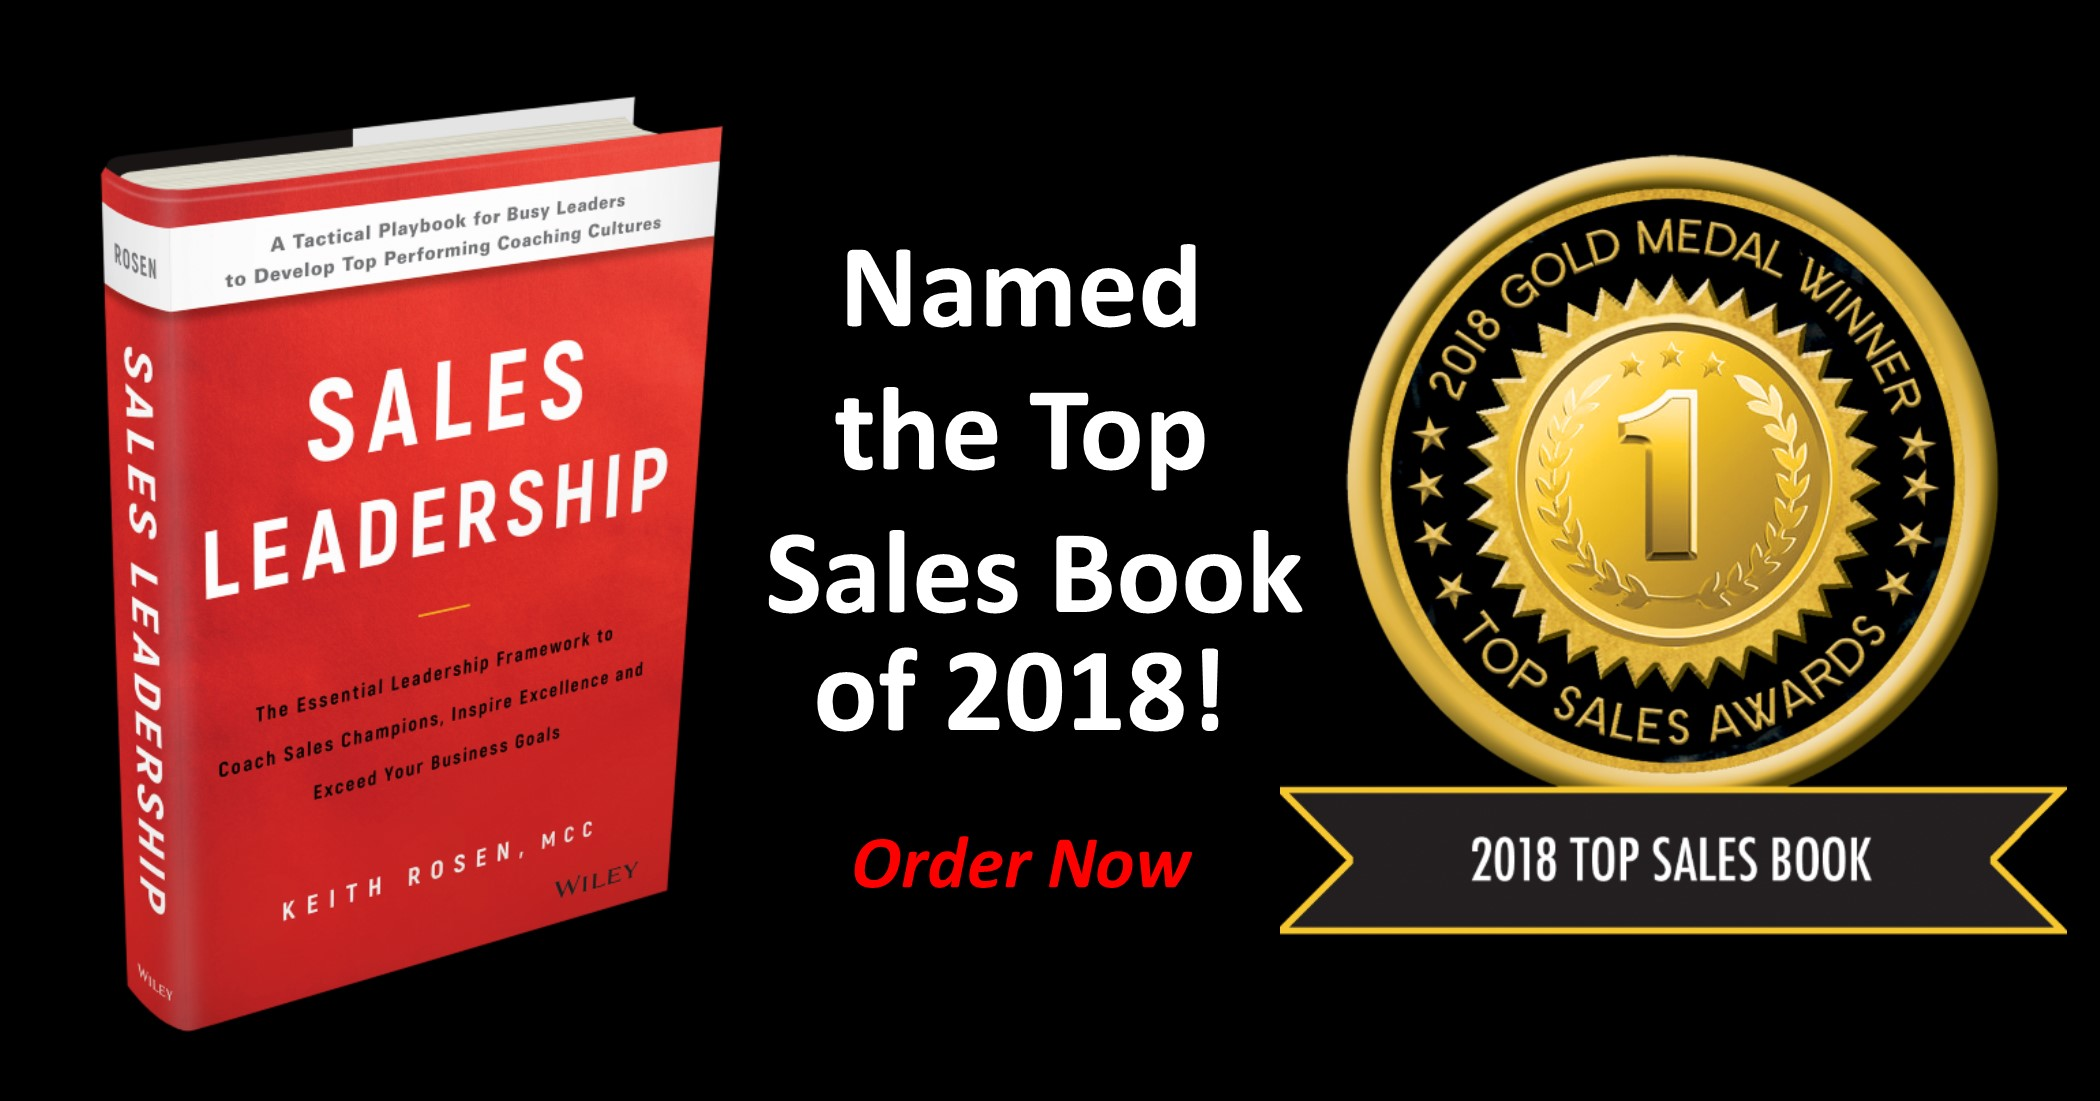 SALES LEADERSHIP Video – Book Club Chapter Discussions Episodes 1-5